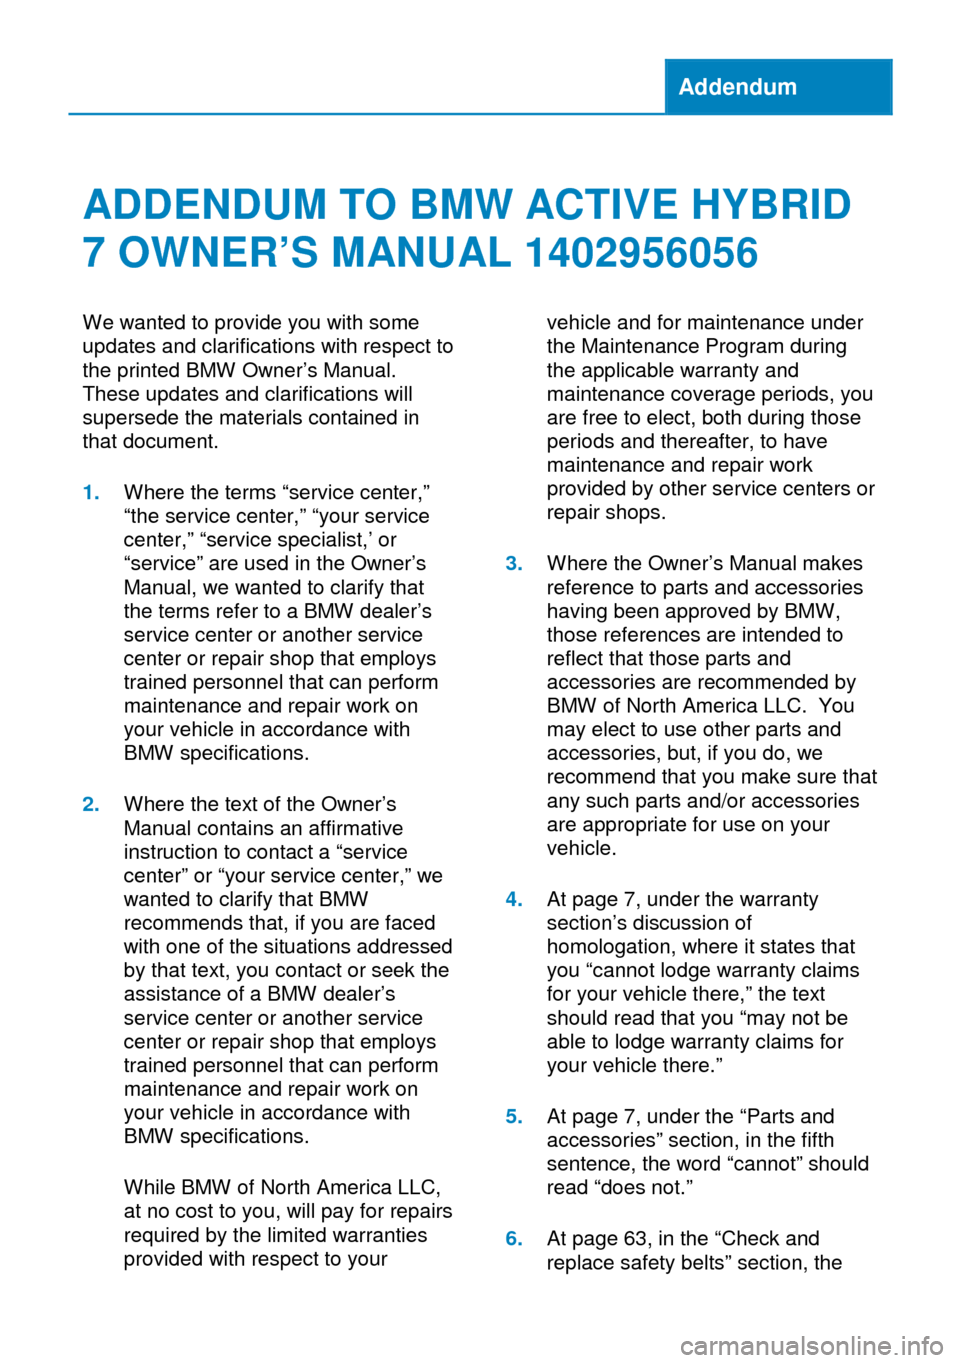 BMW ACTIVE HYBRID 7 2014 F01H Owners Manual, Page 5